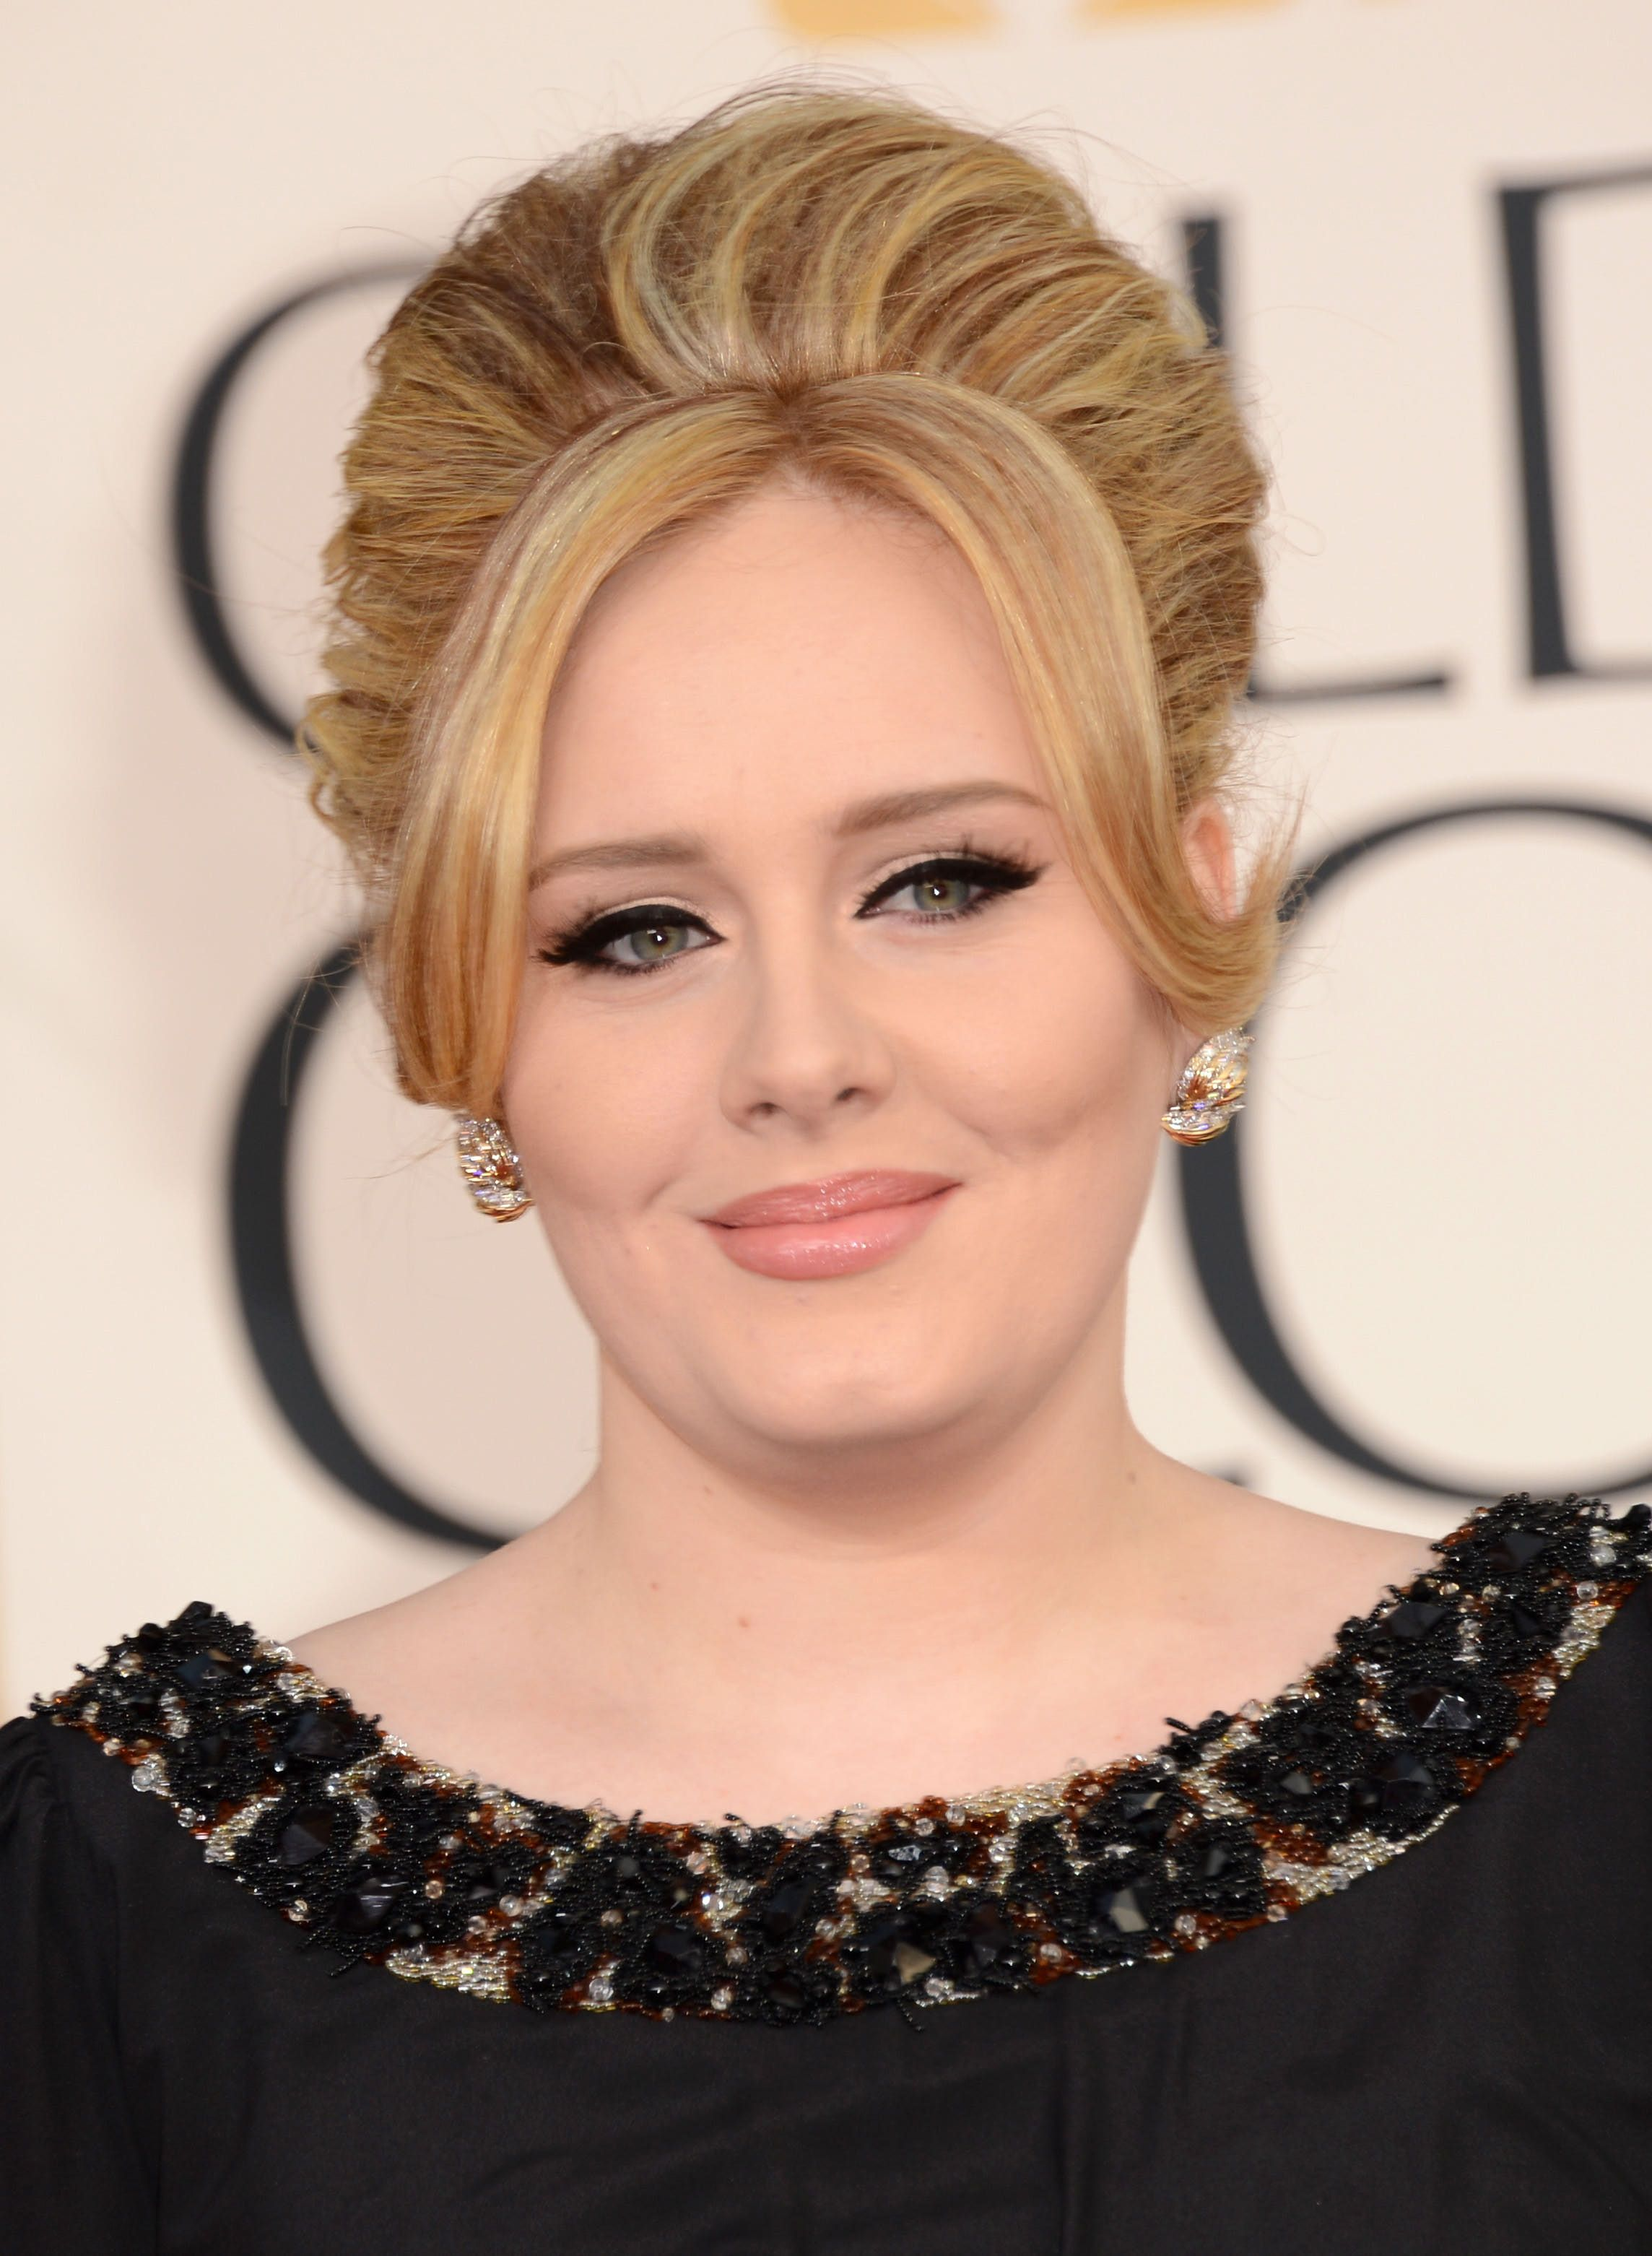 Adele Hair Style: Classic Beauty on the Red Carpet pics